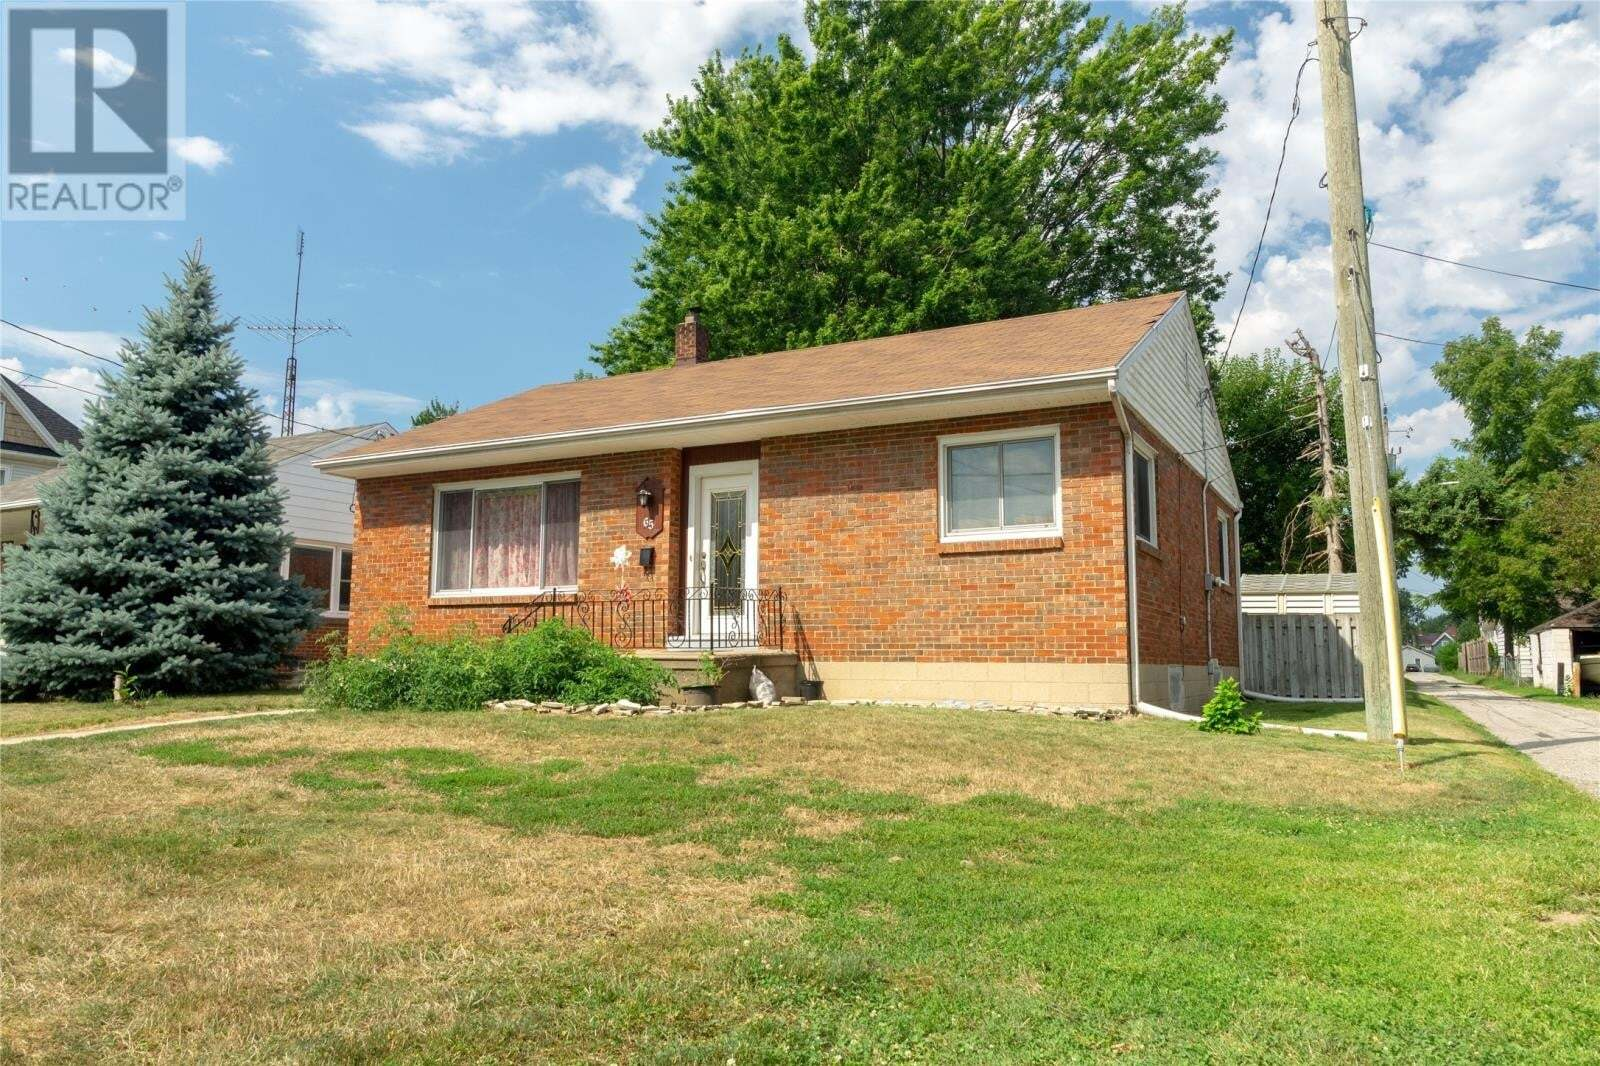 House for sale at 65 Victoria S  Leamington Ontario - MLS: 20009943